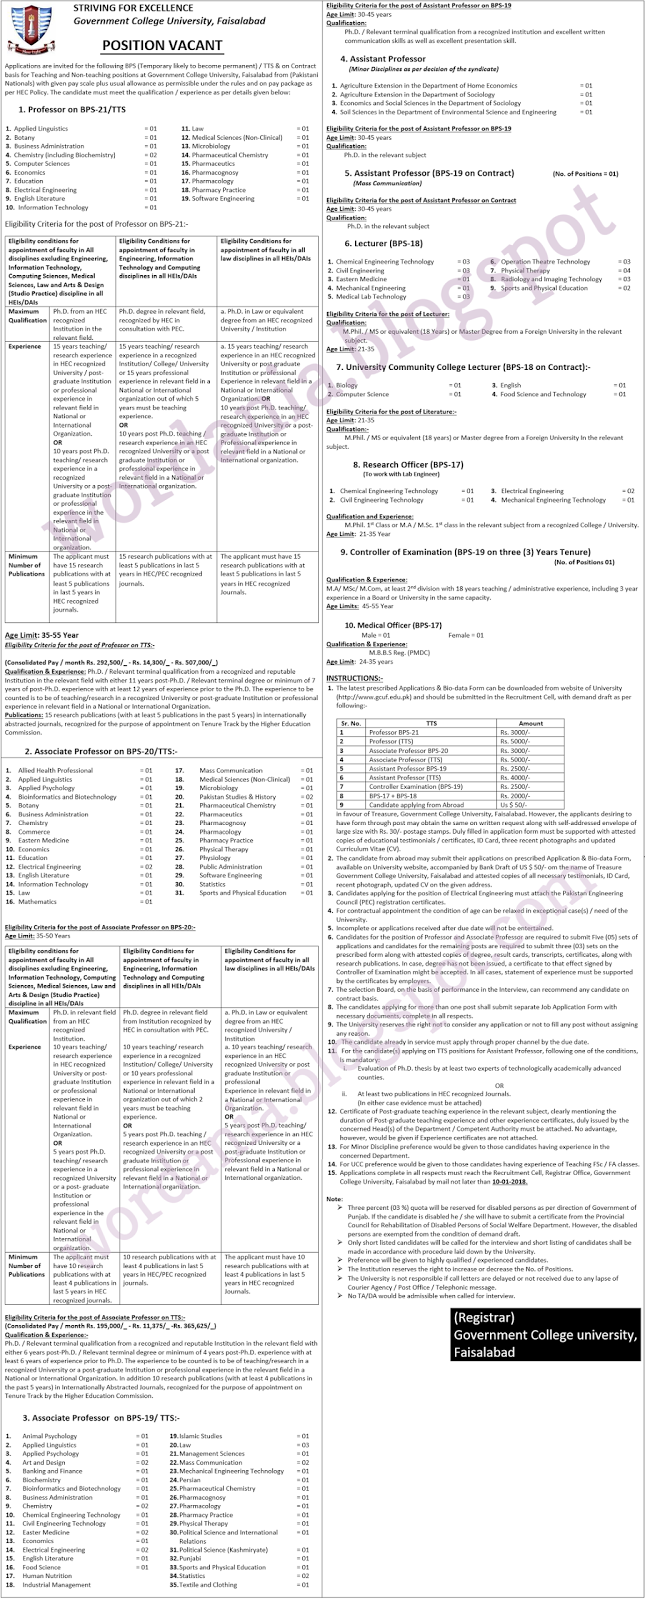 Jobs in Government College University (GCUF), Faisalabad